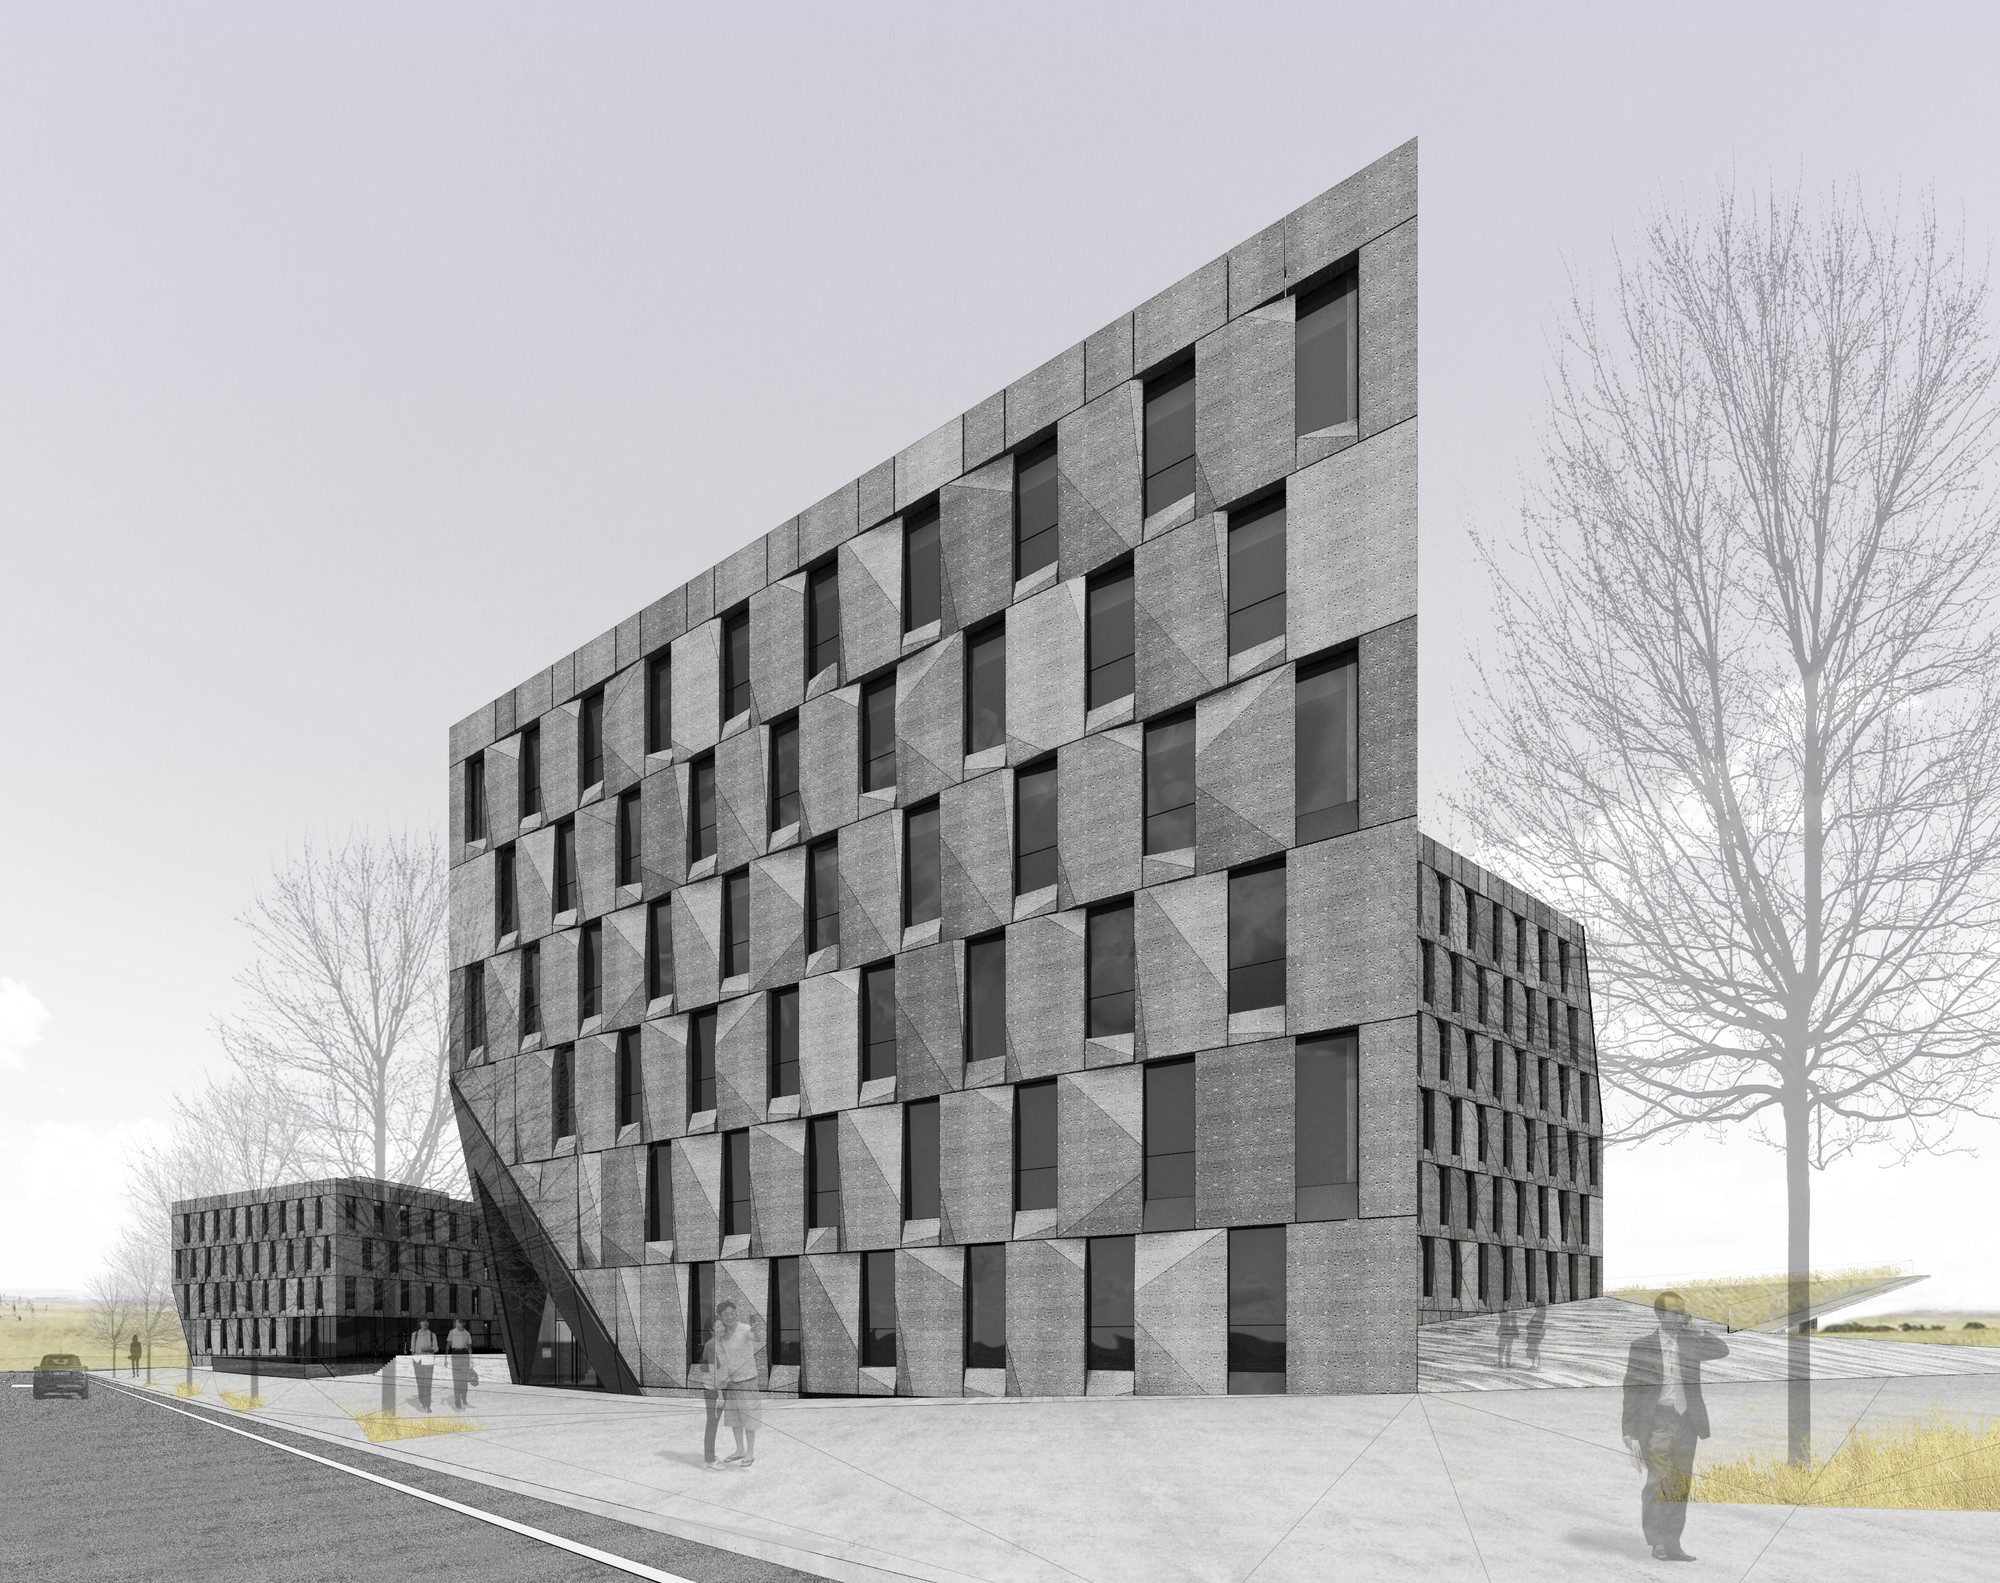 Cubic Buildings by NADAAA and Himma Studio Redefine the Office Space, Courtesy of NADAAA